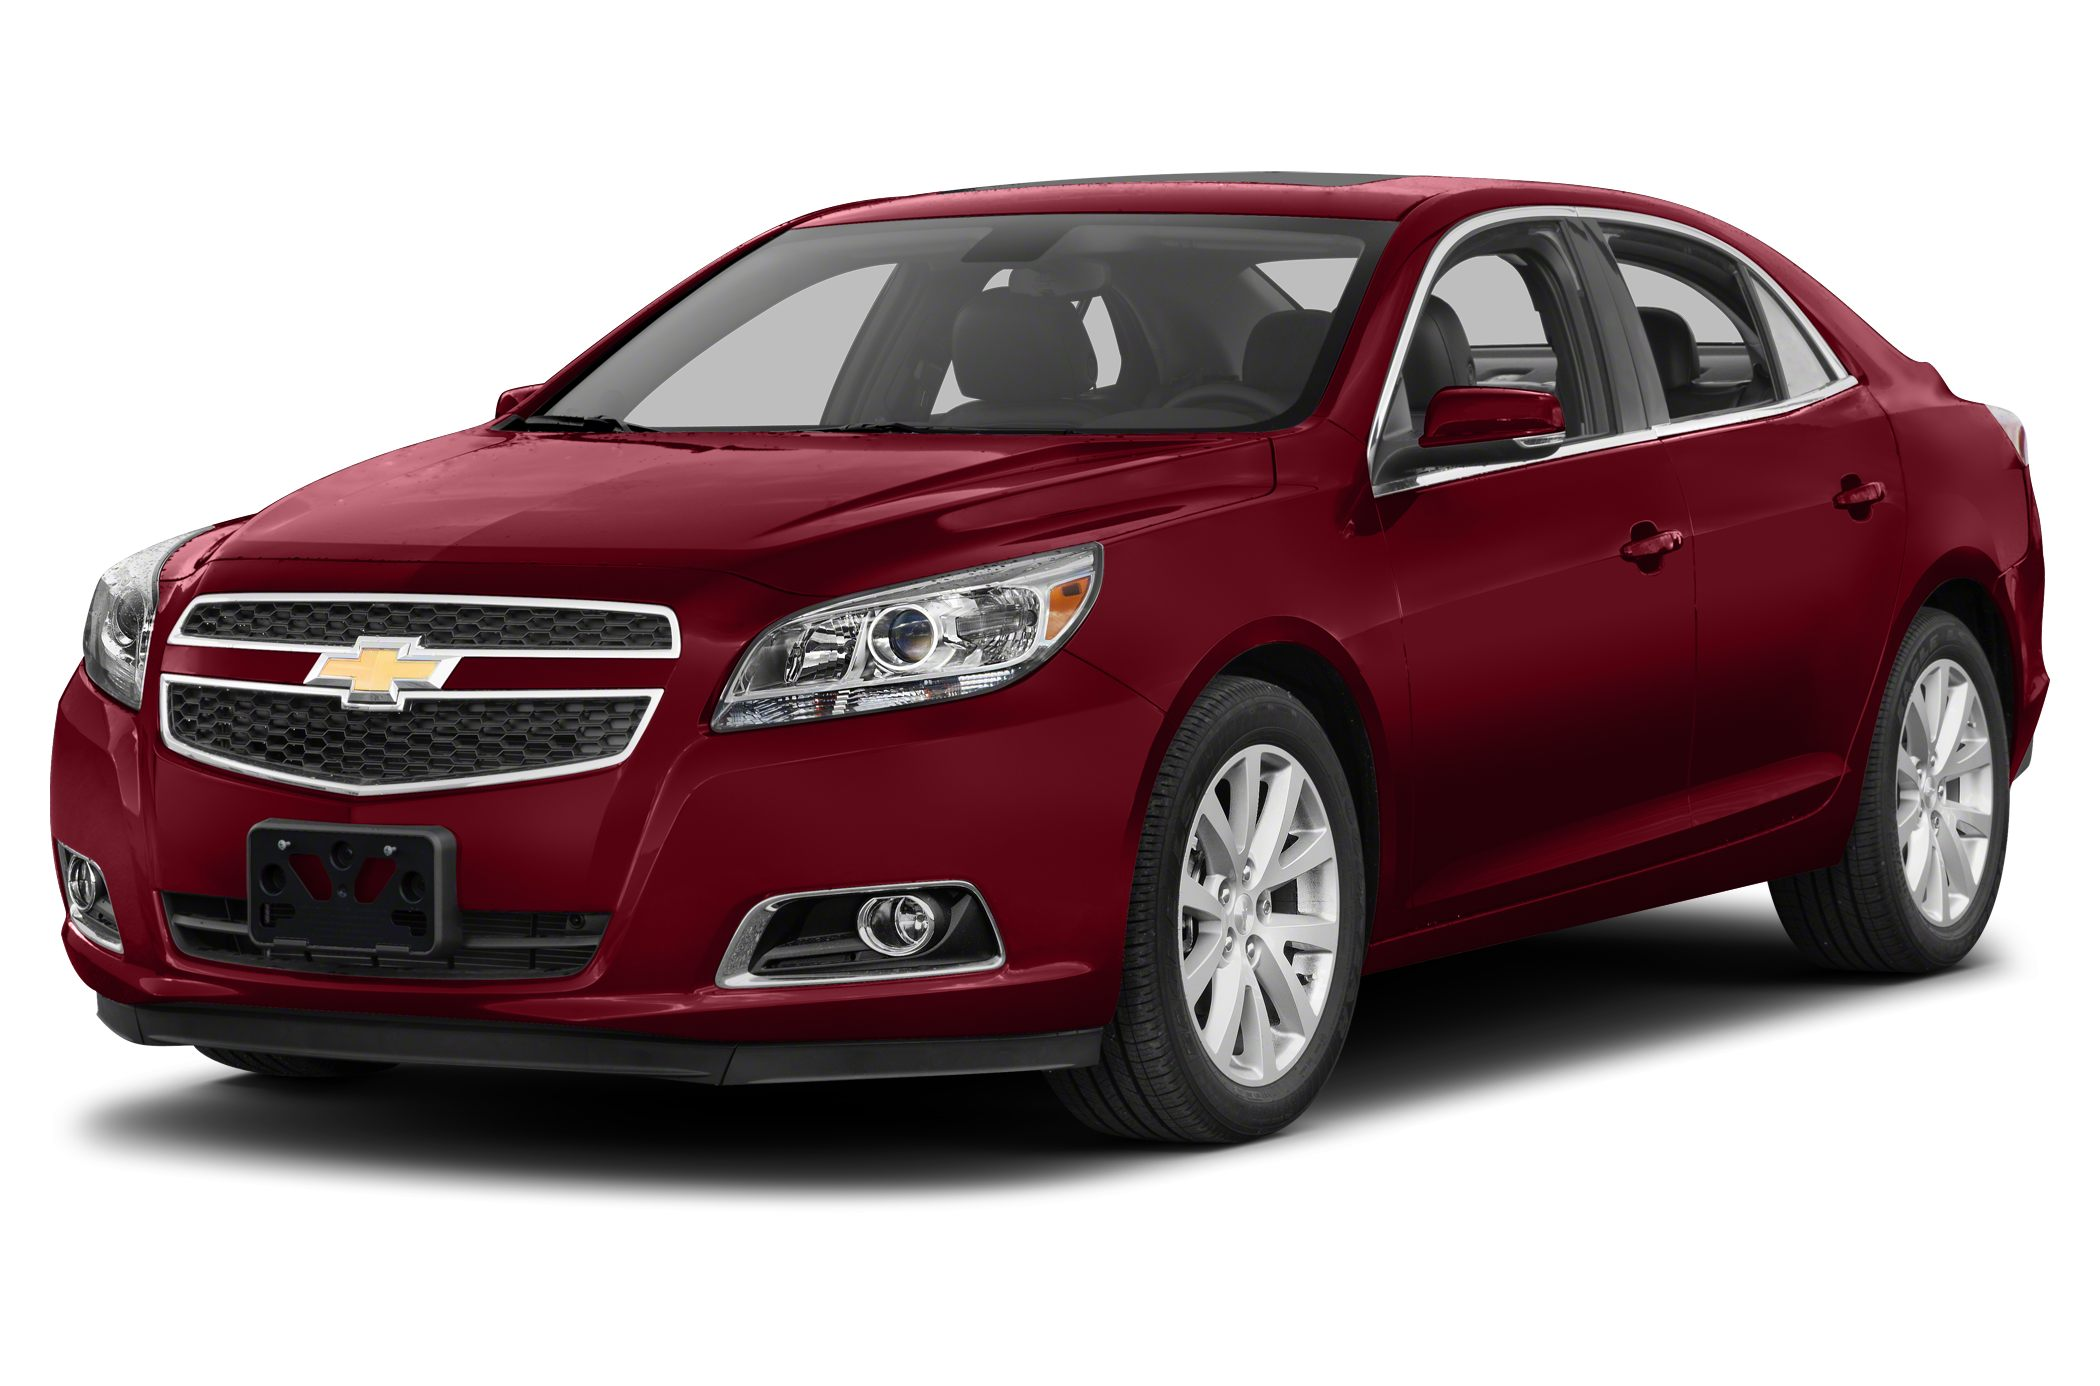 2013 Chevrolet Malibu 2LT If youve been seeking just the right 2LT then stop your search right her